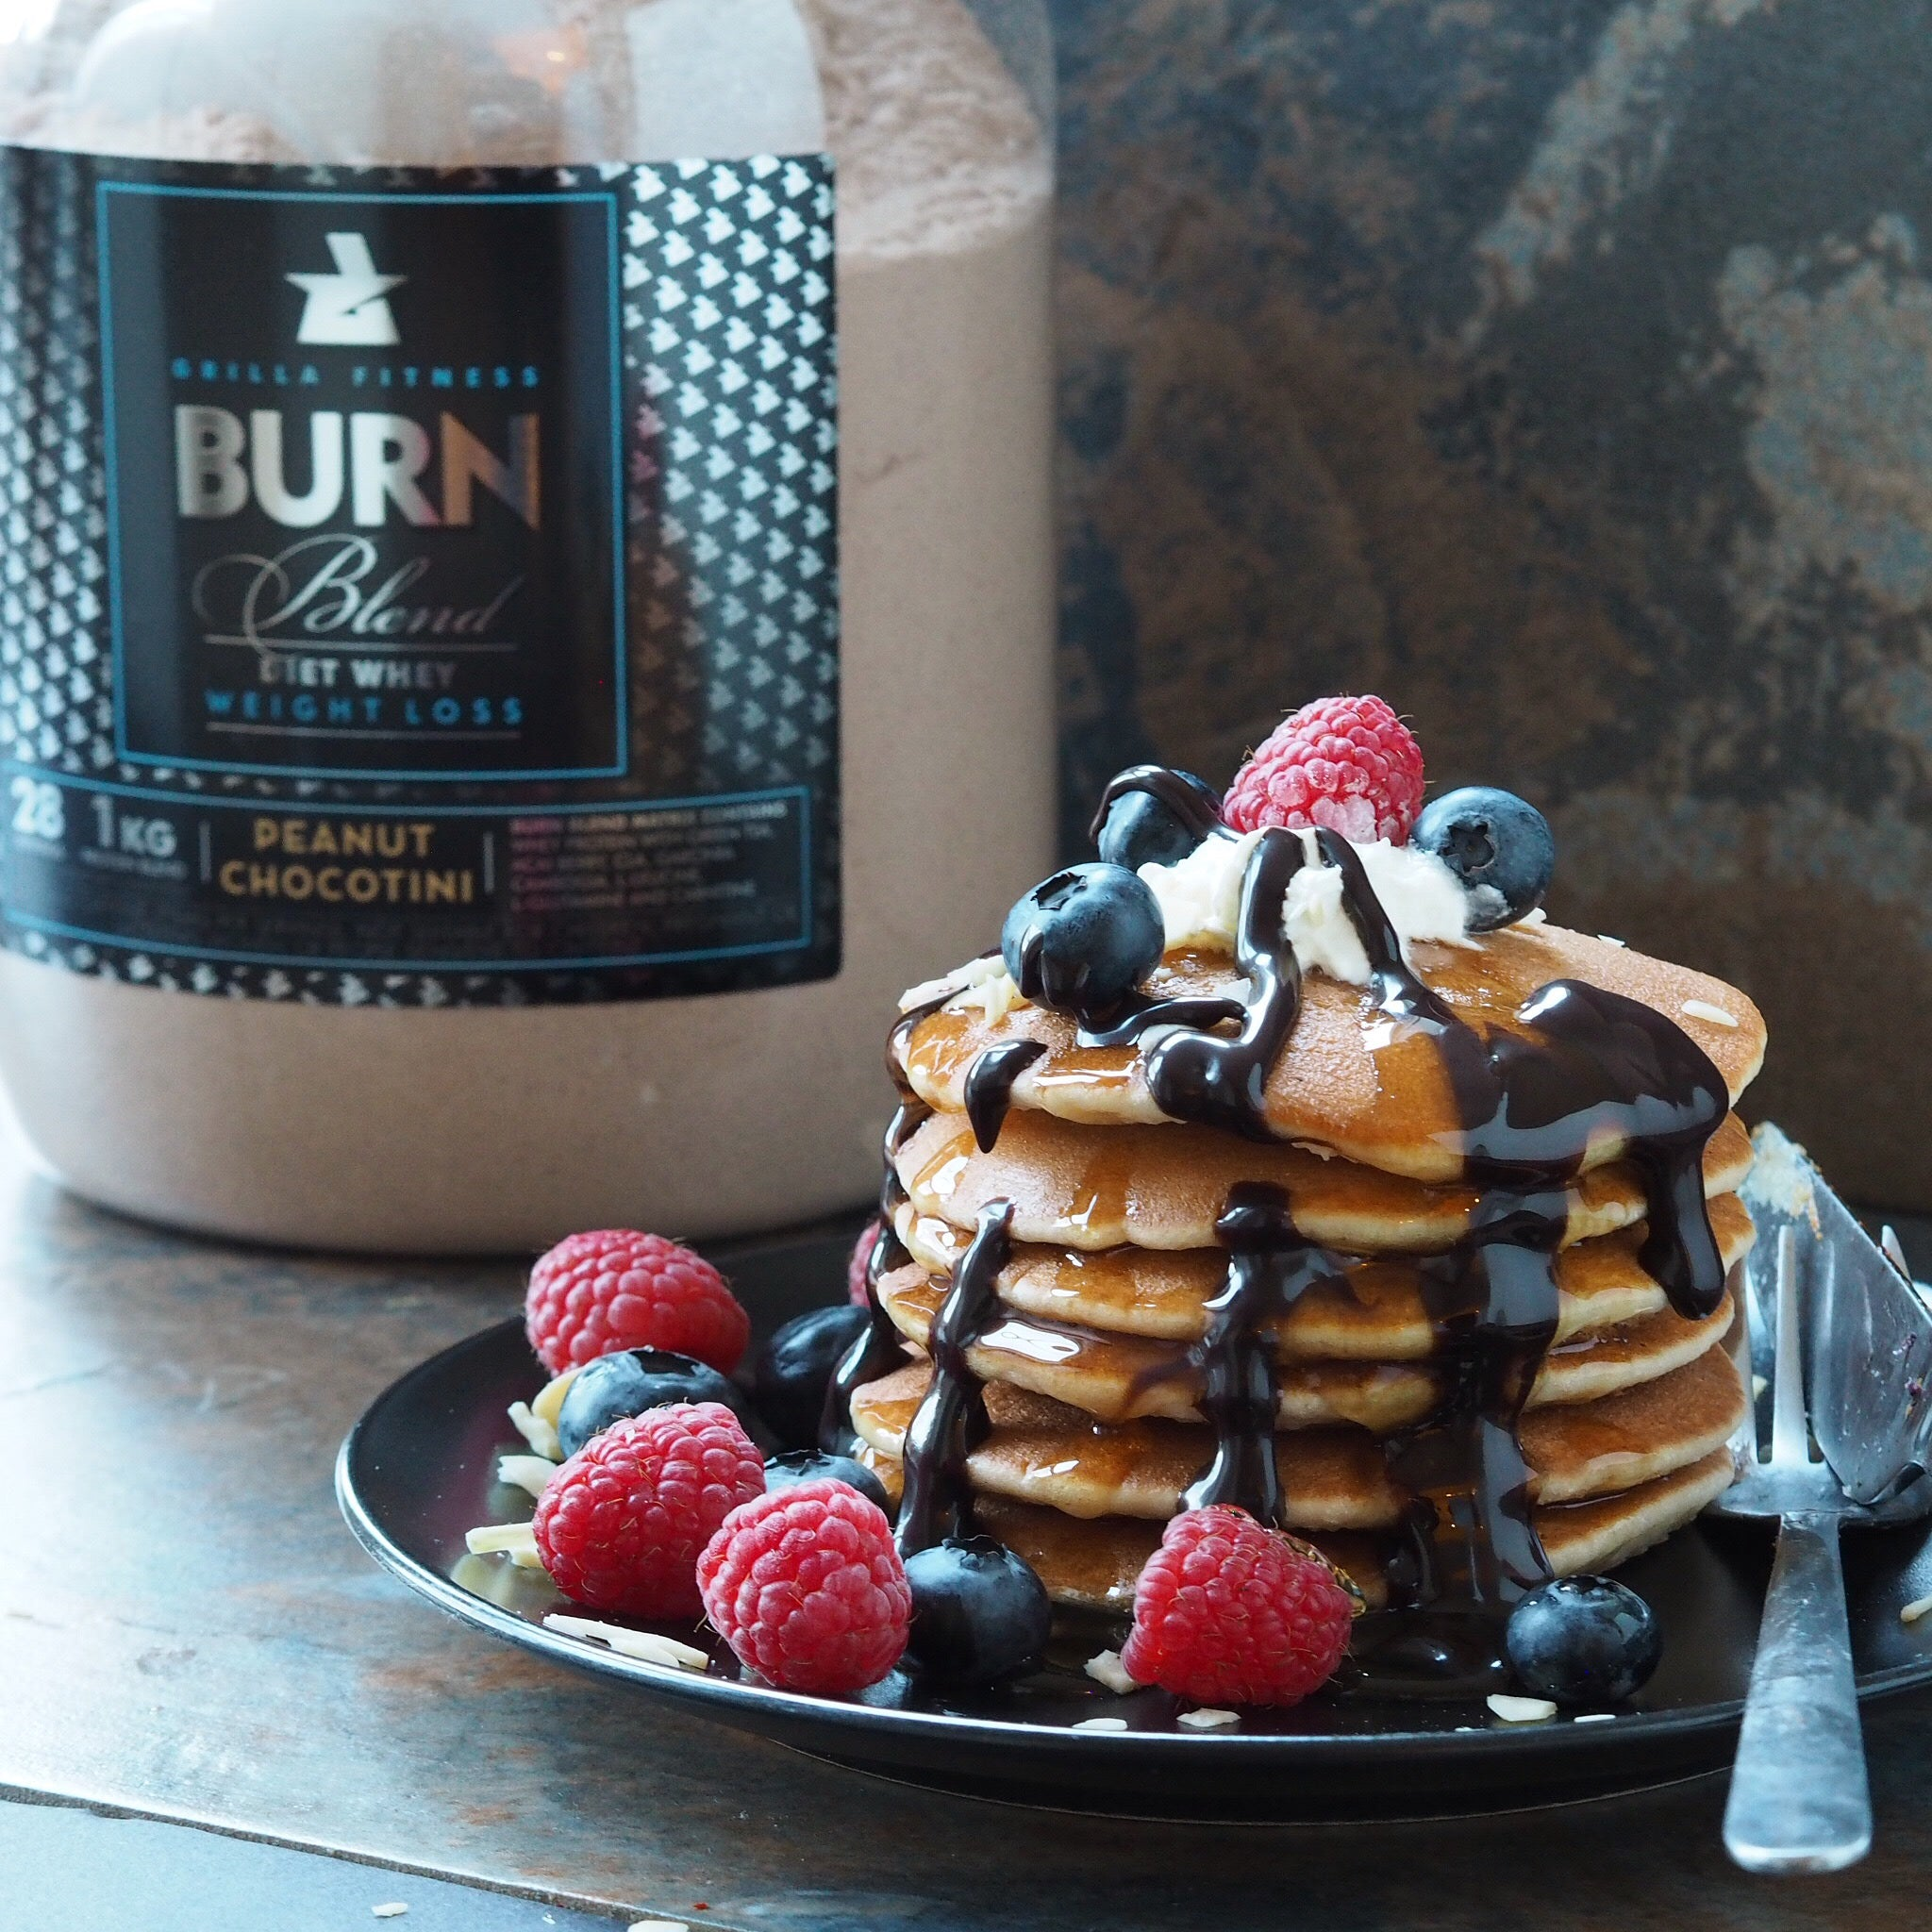 Anyone for Protein pancakes?